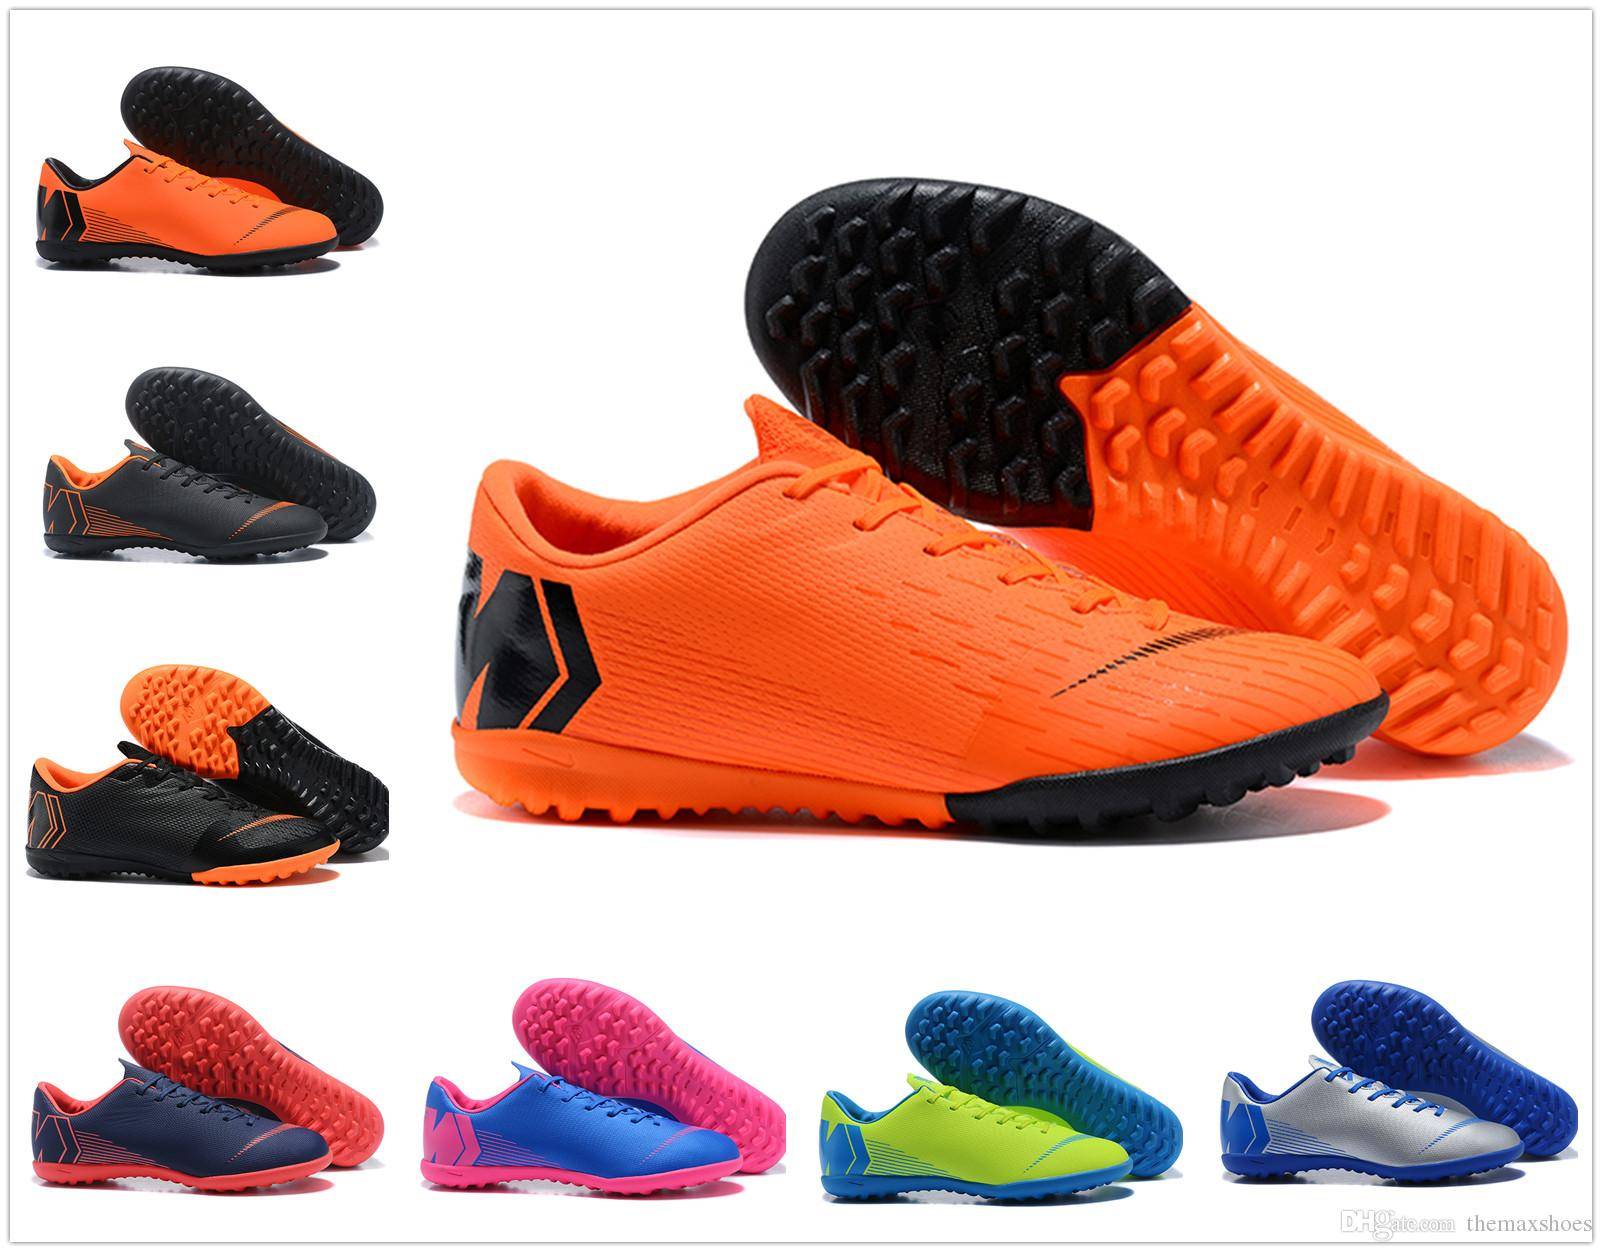 premium selection 479b7 4e4f2 New arrival Mercurial Superfly V Soccer vaporx Shoes MercurialX generation  12 TF IC Football Cleats 39-45 CR7 ACC Soccer Boots Proximo Sneak